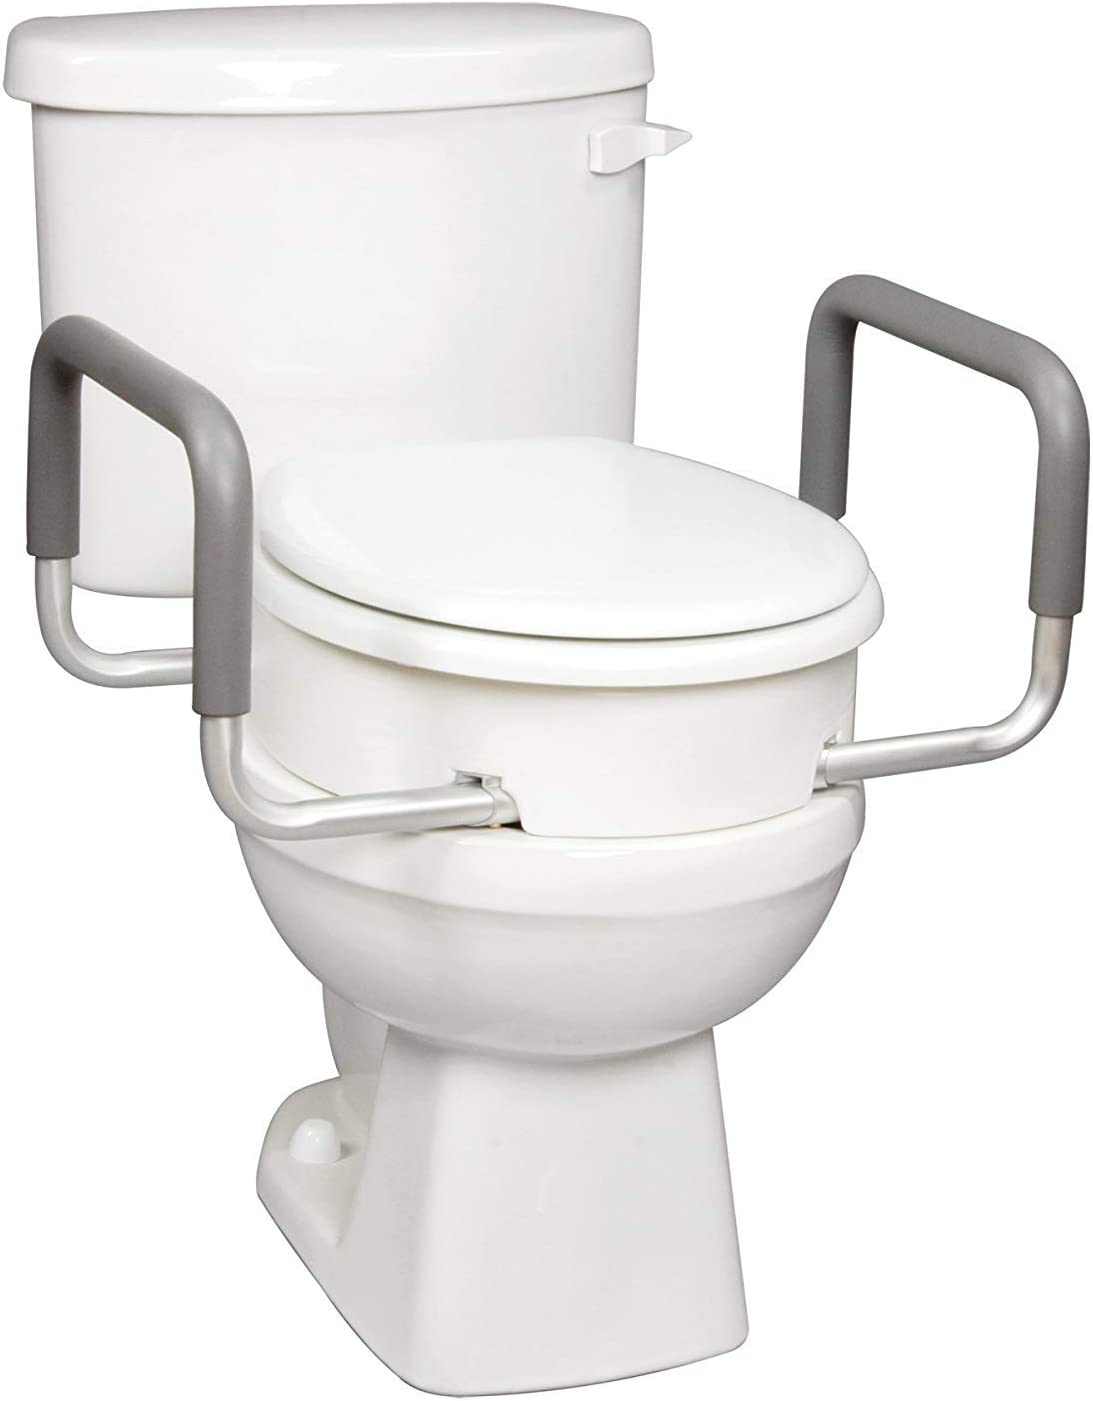 Amazon.com: Carex 3.5 Inch Raised Toilet Seat with Arms   For